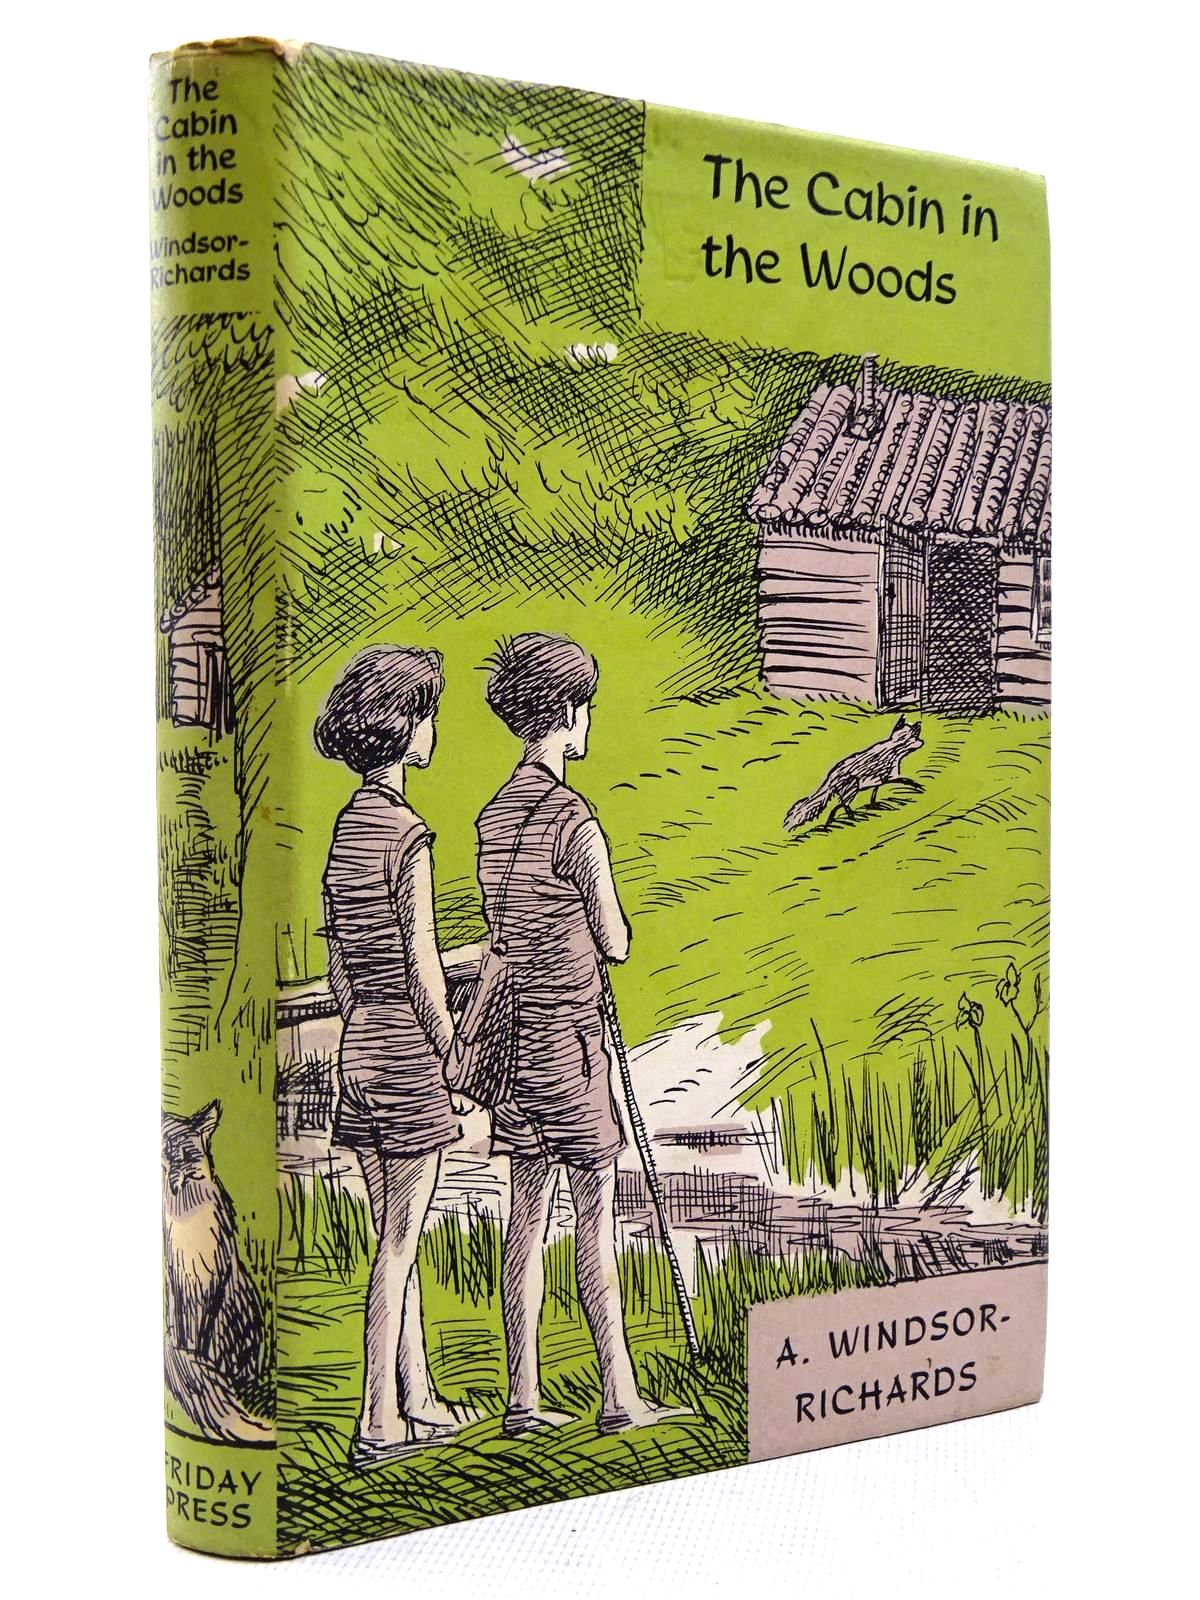 Photo of THE CABIN IN THE WOODS written by Windsor-Richards, A. illustrated by BB,  published by The Friday Press (STOCK CODE: 2129017)  for sale by Stella & Rose's Books